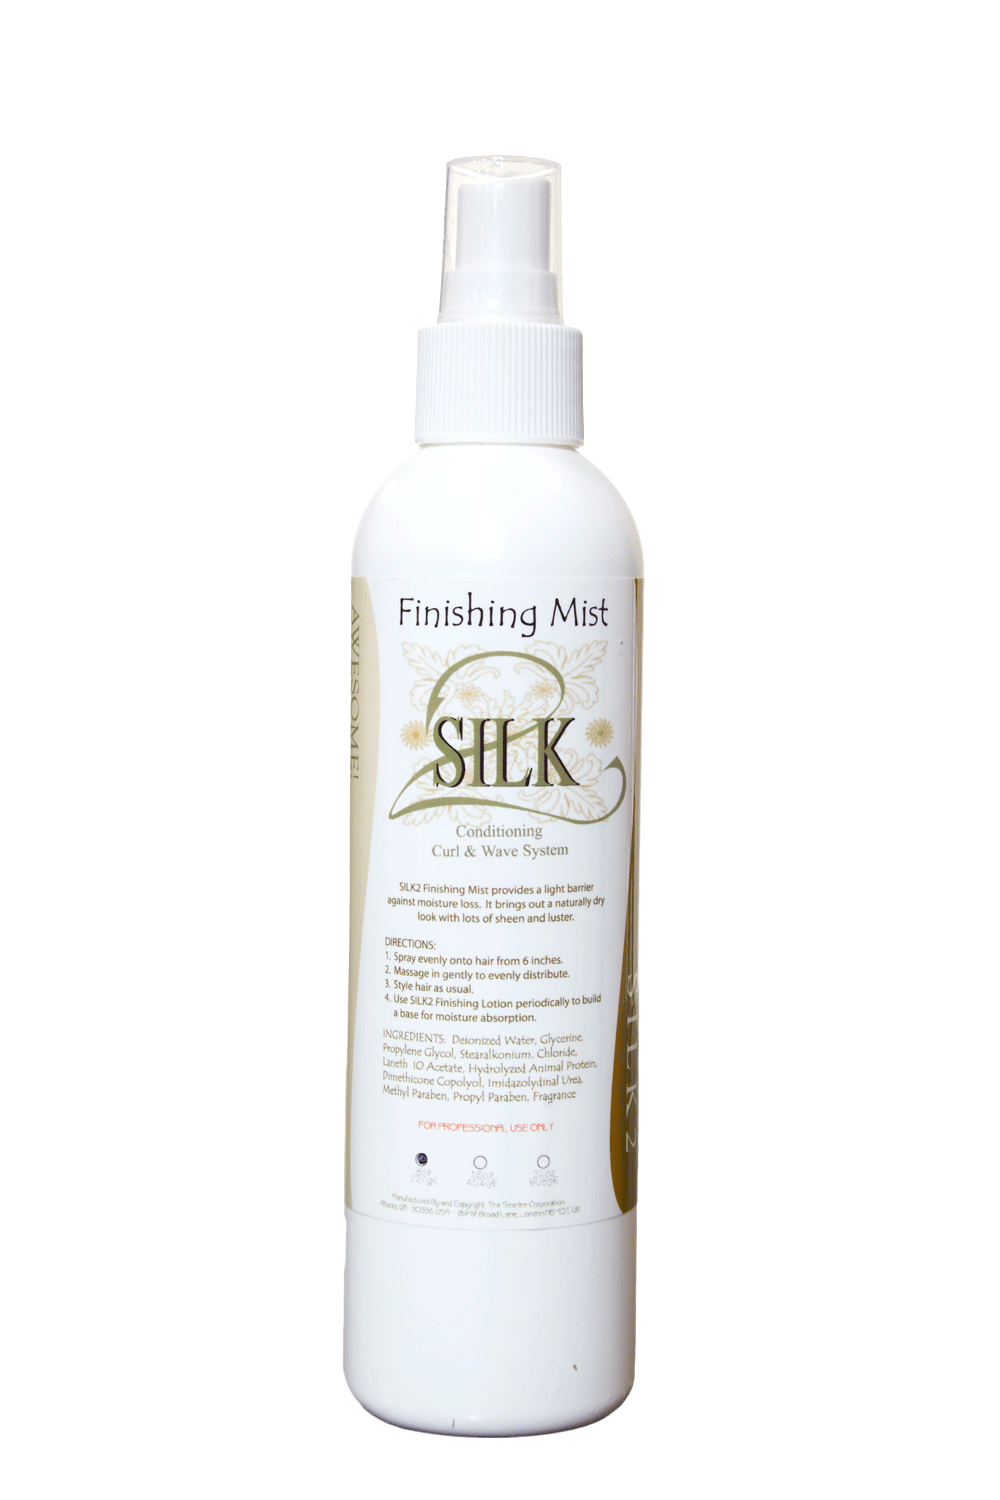 SILK2 Finishing Mist